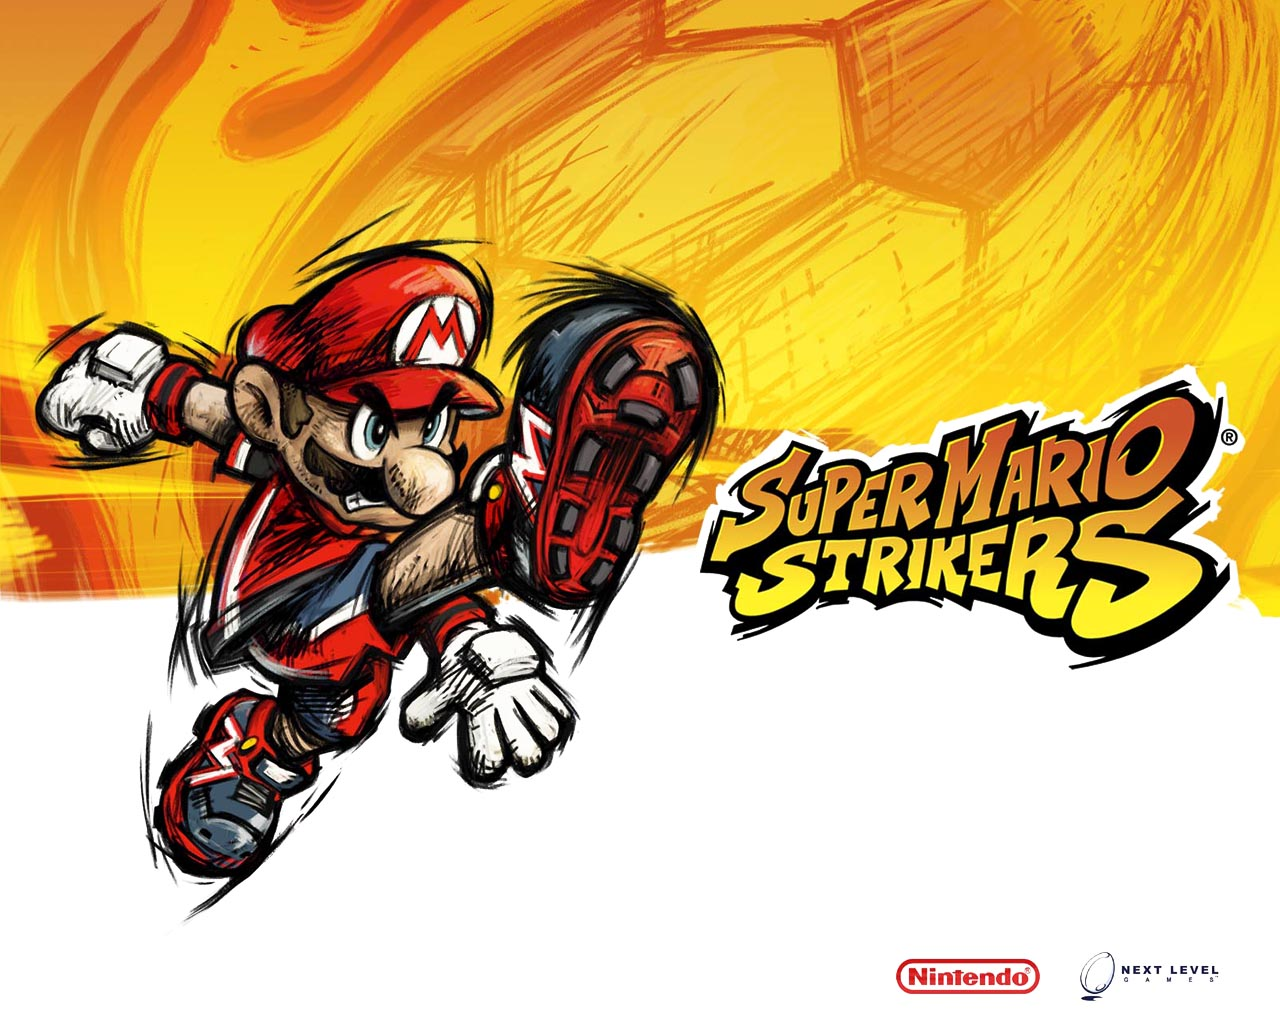 super_mario_strikers_image_01_1280x1024.jpg